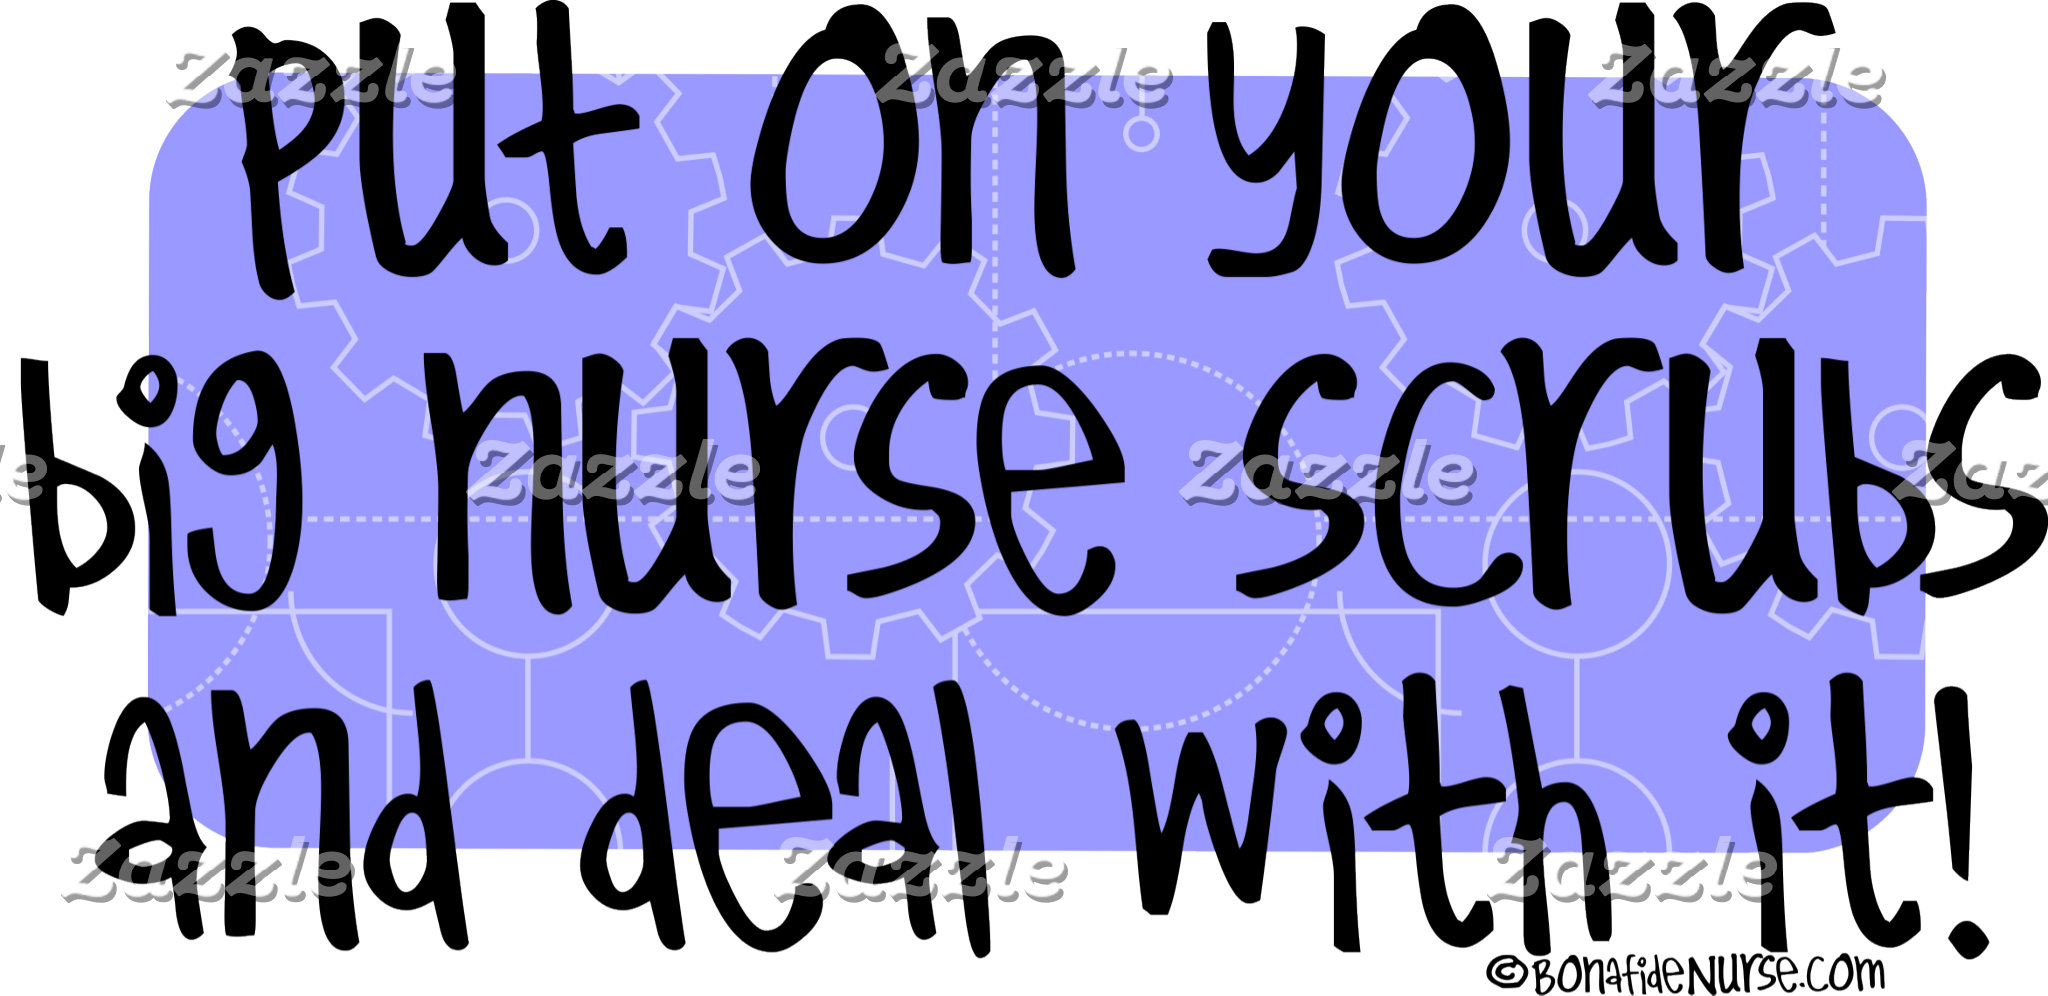 Put on Your Big Nurse Scrubs and Deal with it!